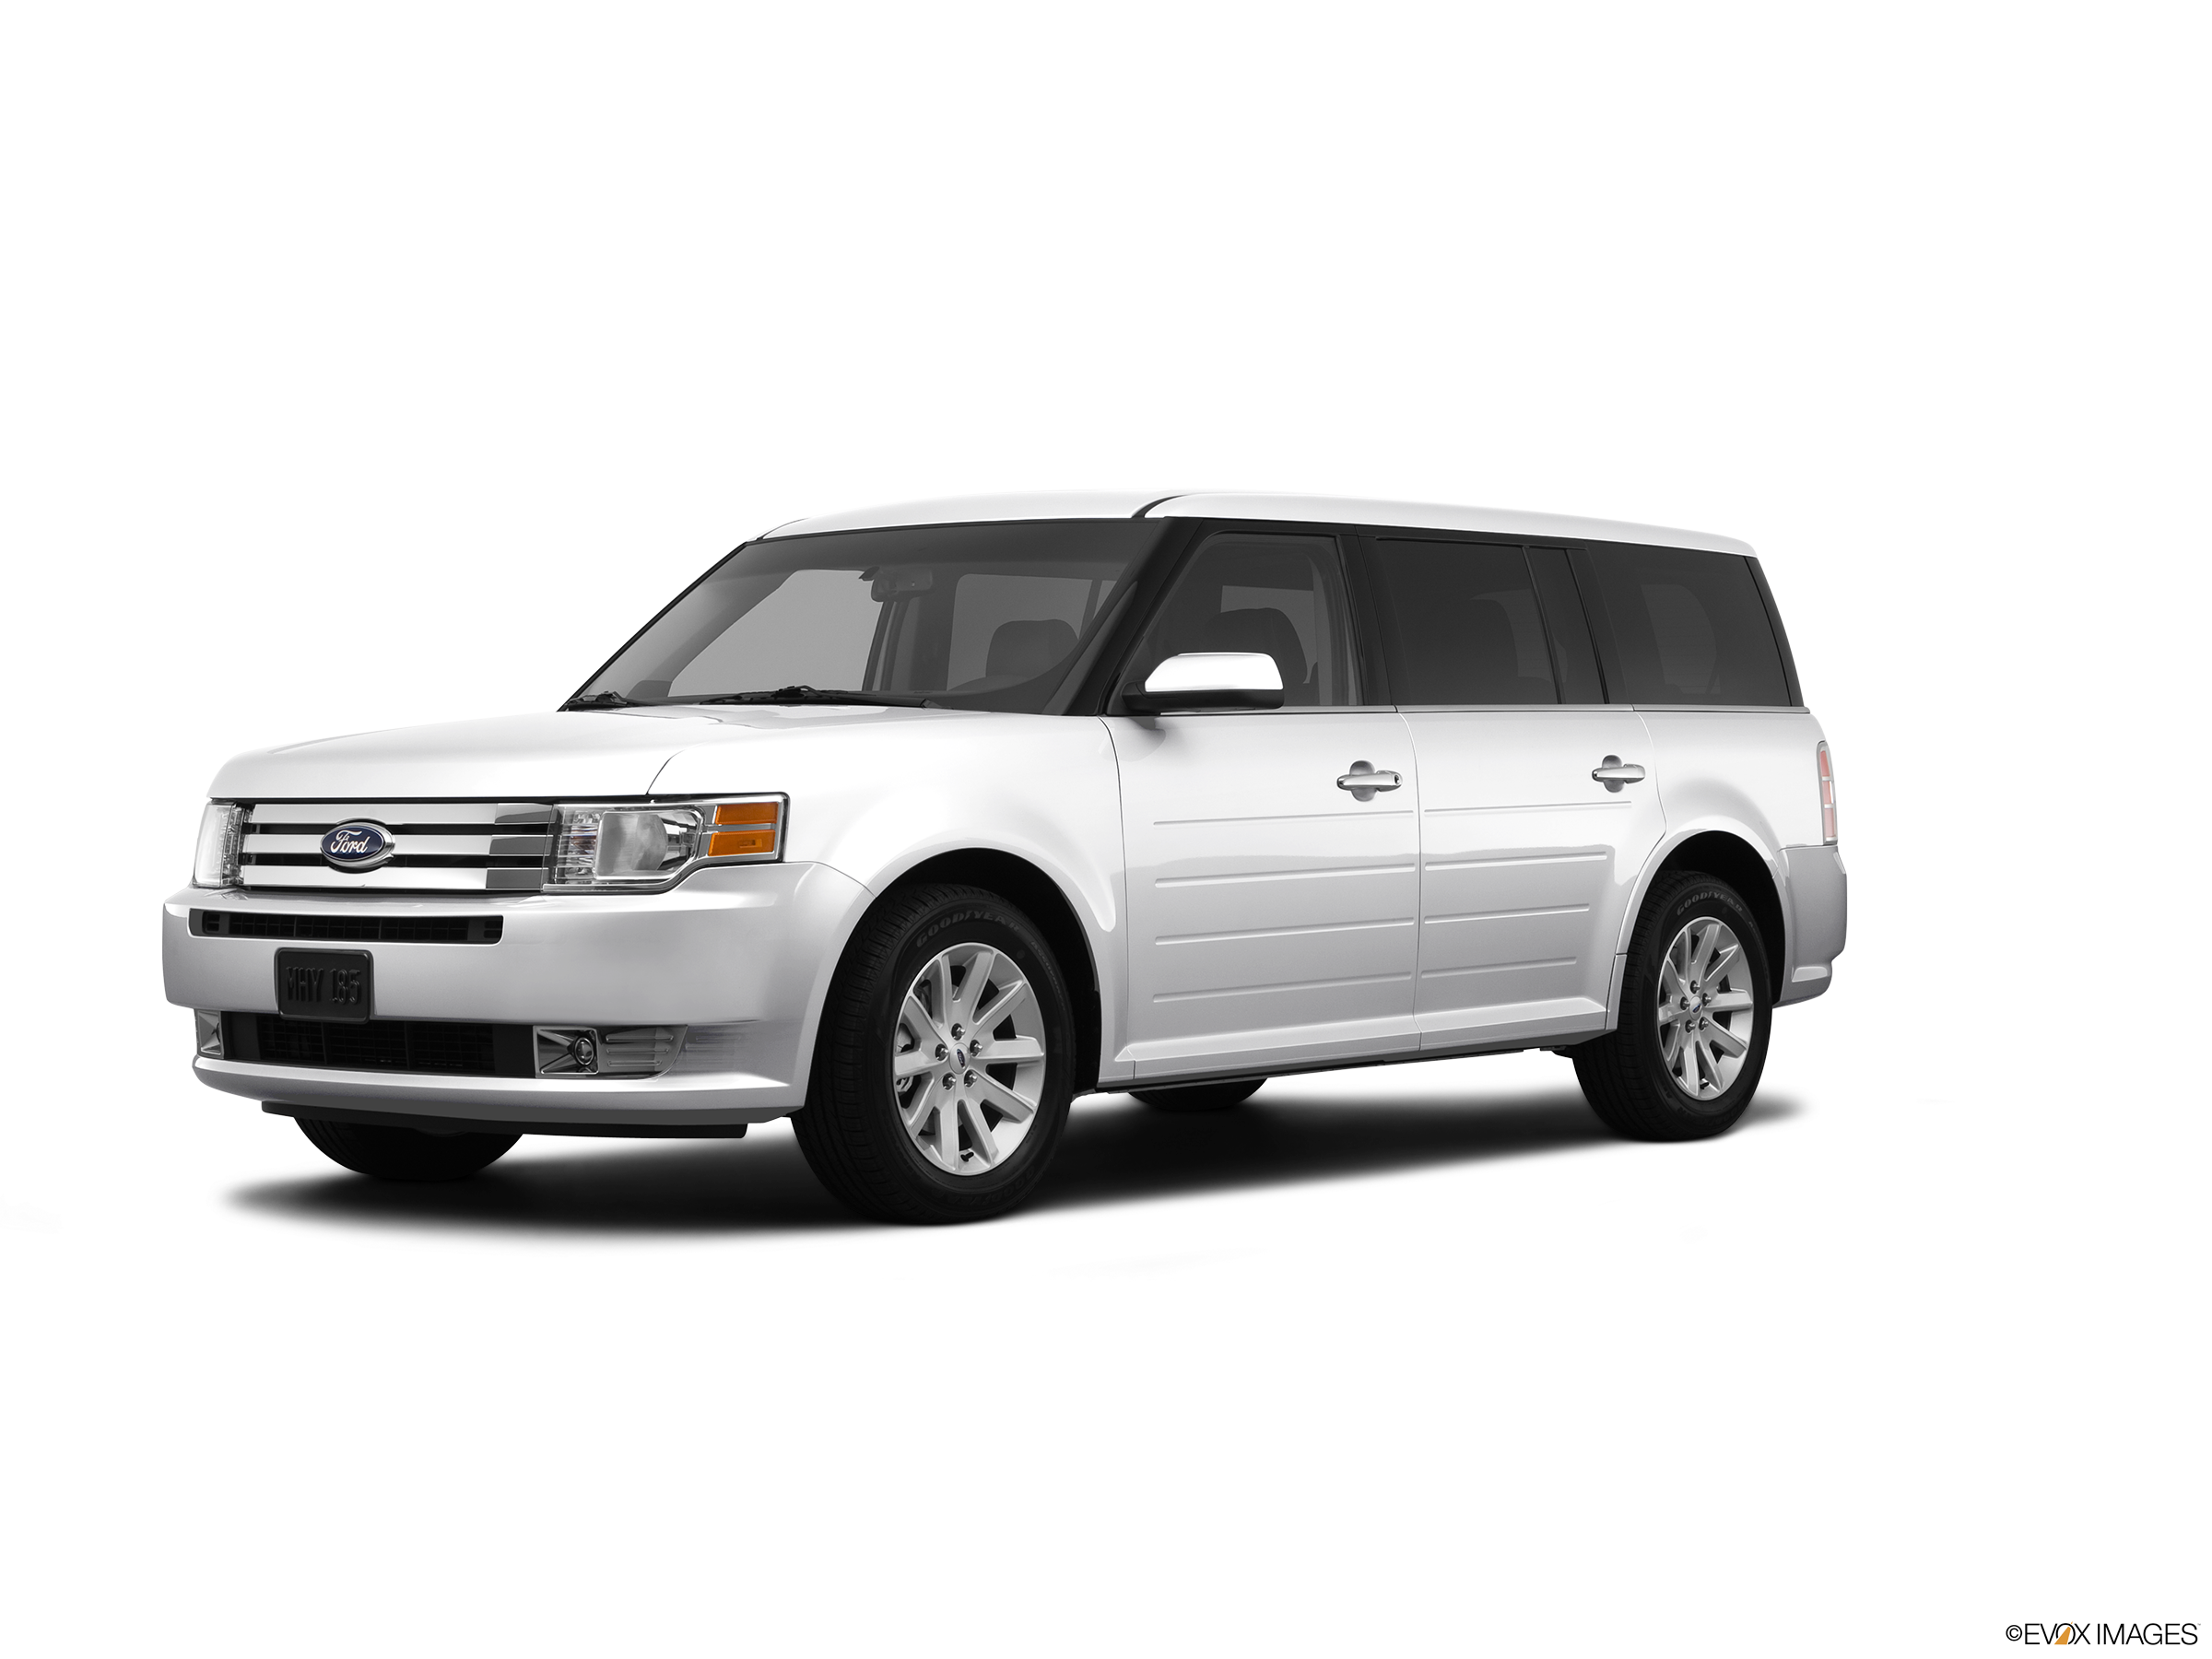 Used 2012 Ford Flex Values & Cars for Sale | Kelley Blue BookKelley Blue Book